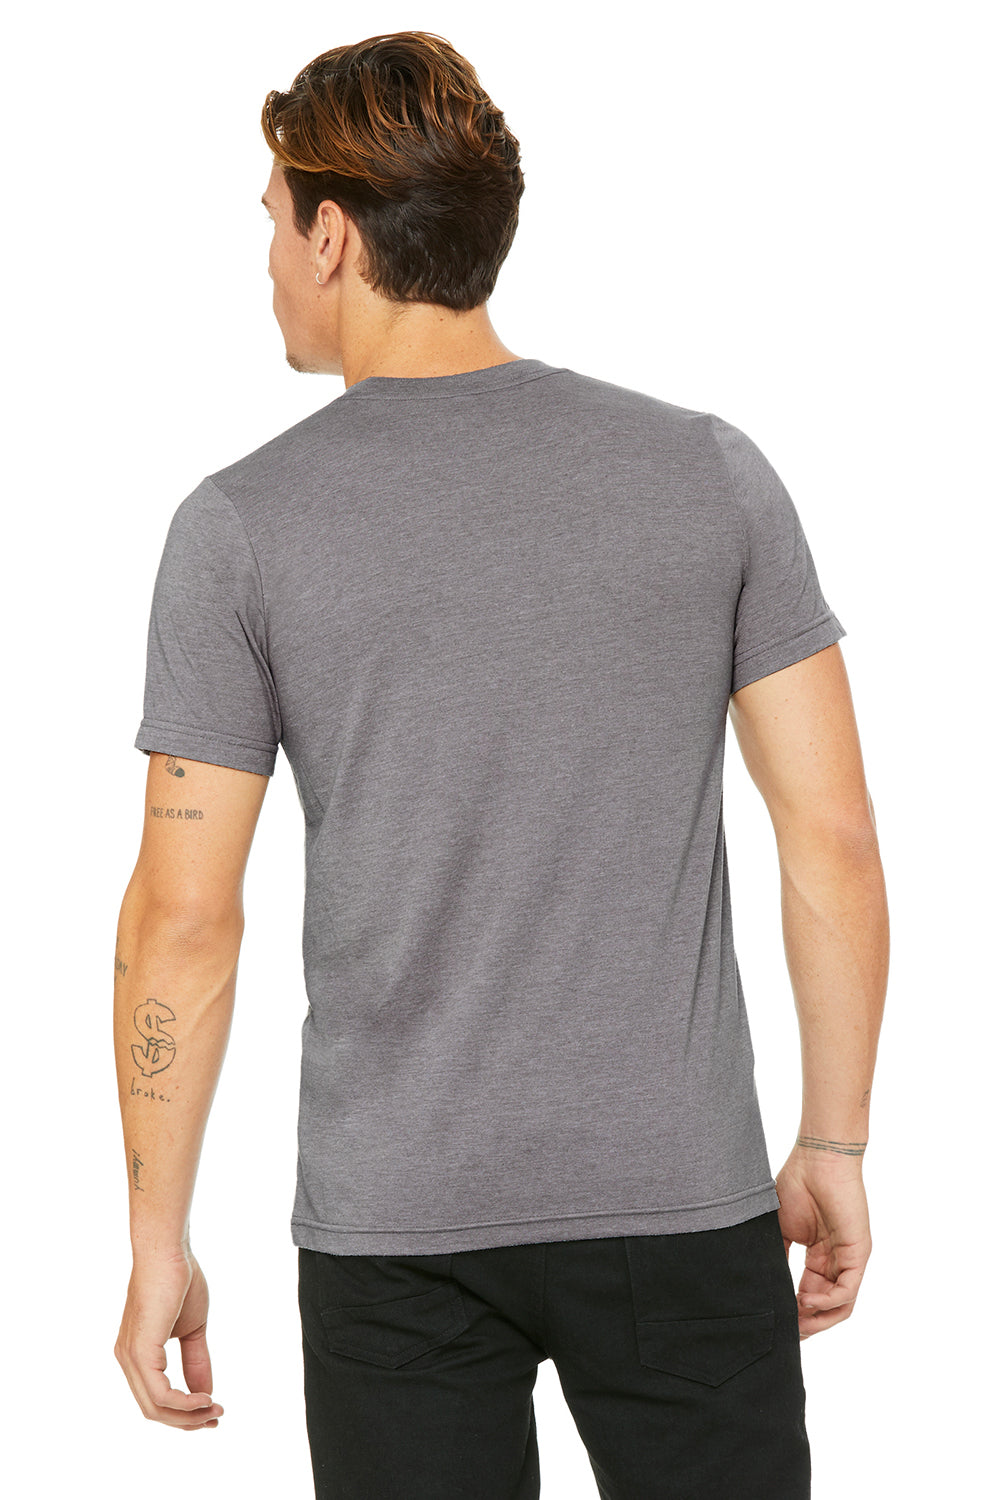 Bella + Canvas 3001C Mens Jersey Short Sleeve Crewneck T-Shirt Heather Storm Grey Back